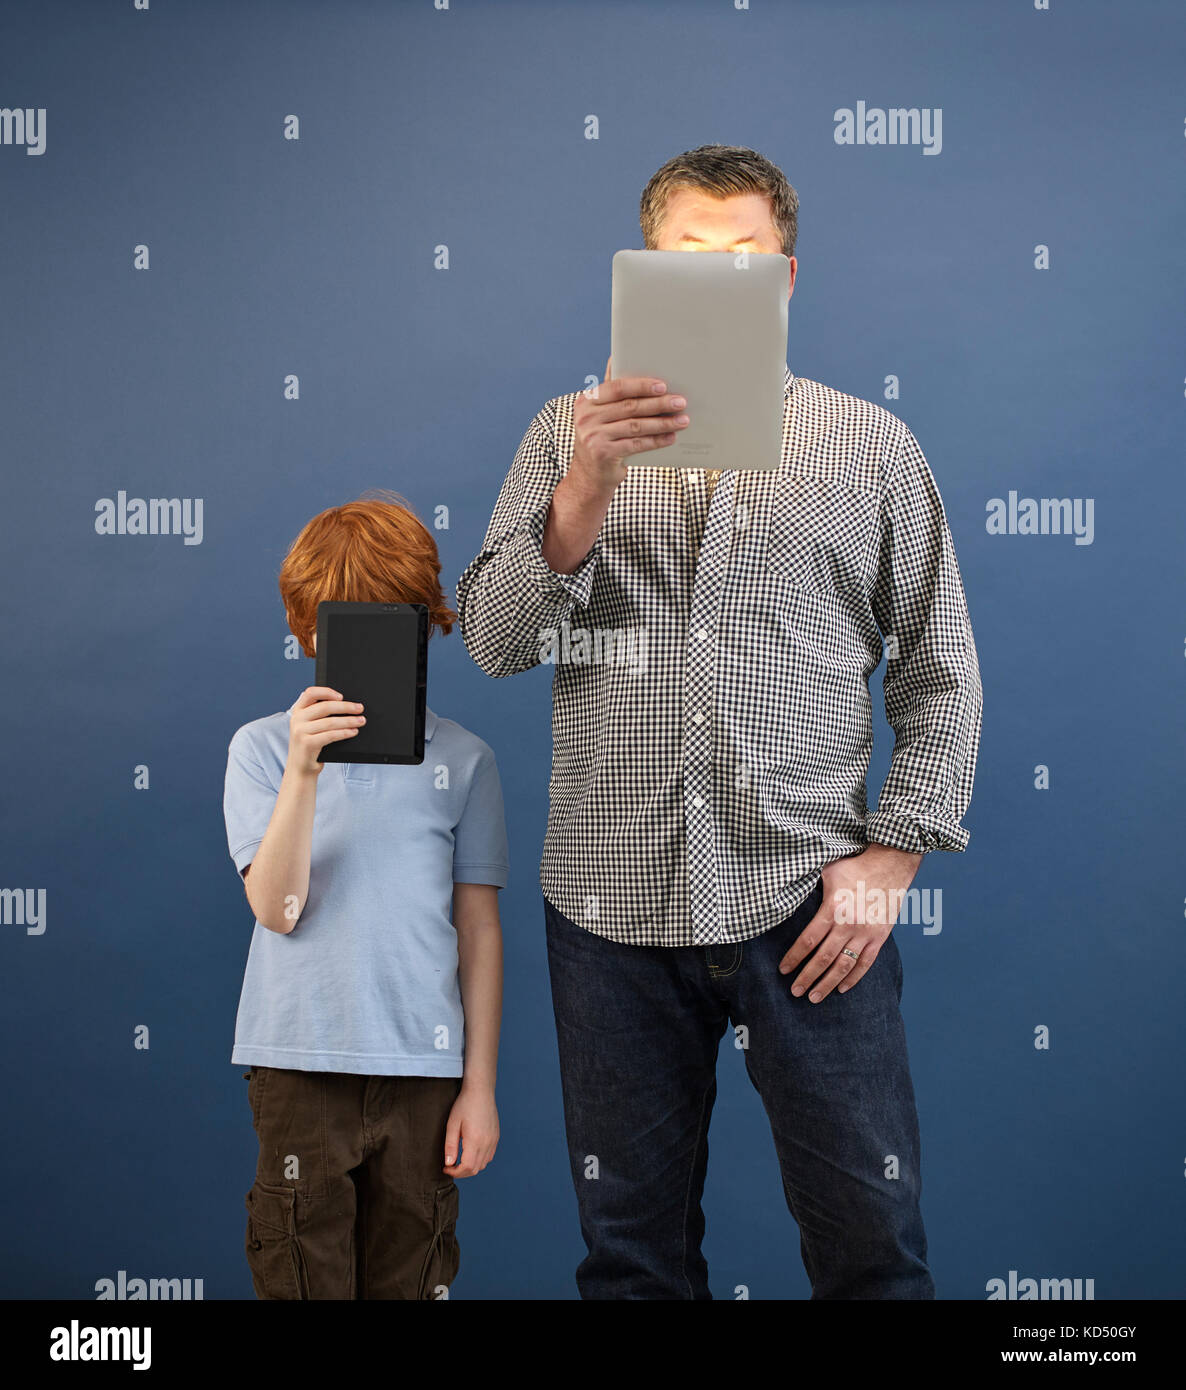 adult and child looking at tablets - Stock Image